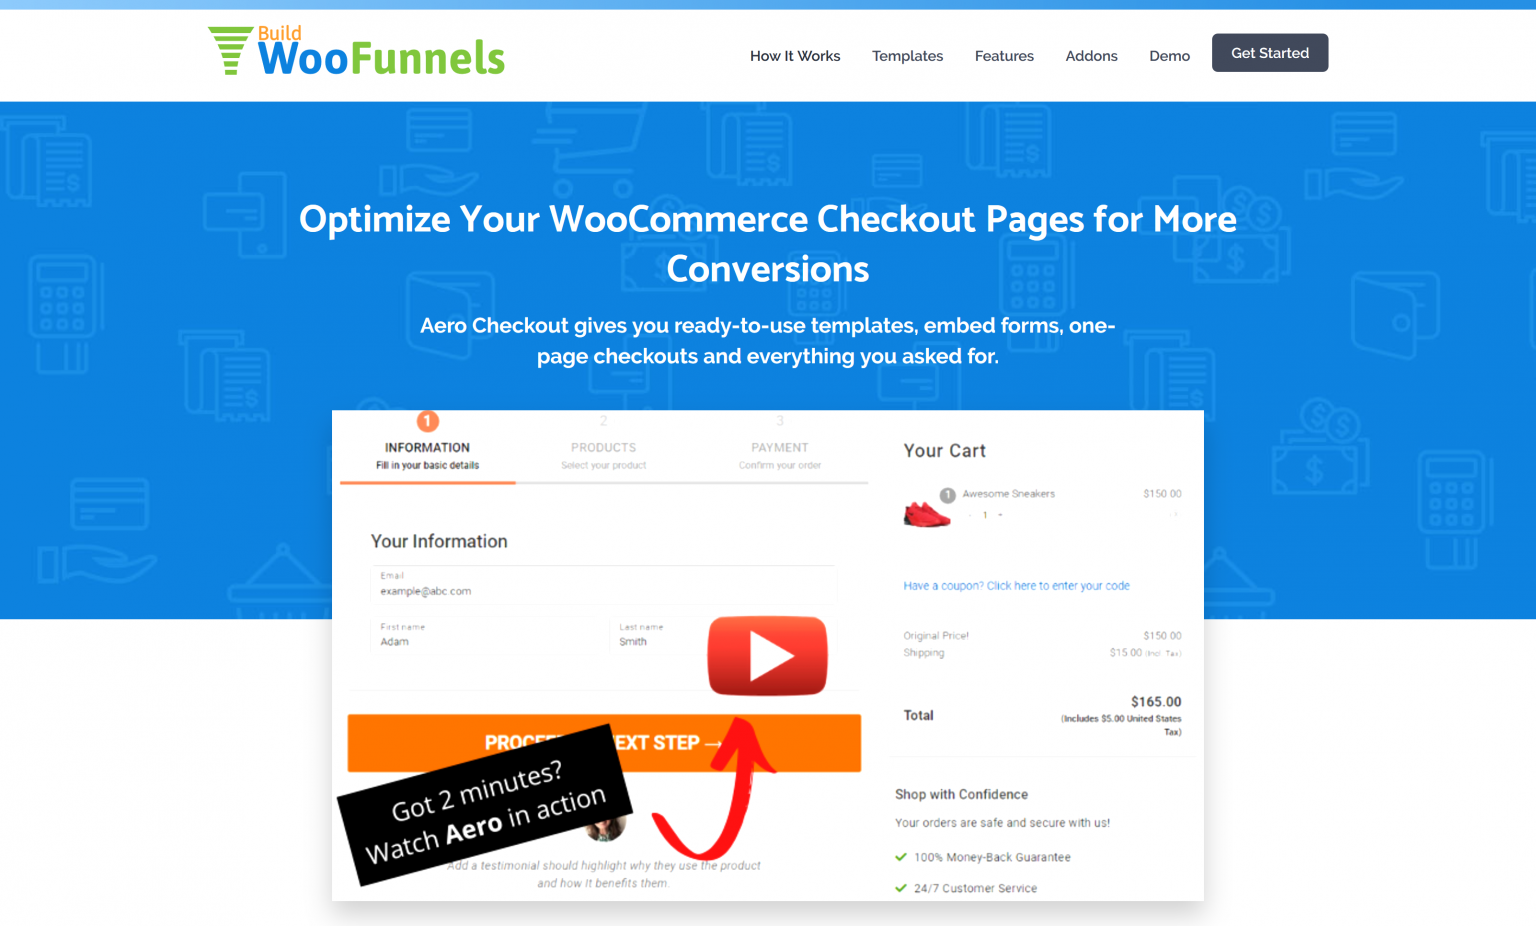 WooFunnels AeroCheckout 2.10.2 (+ All 3 Addons) – Custom WooCommerce Checkout Pages